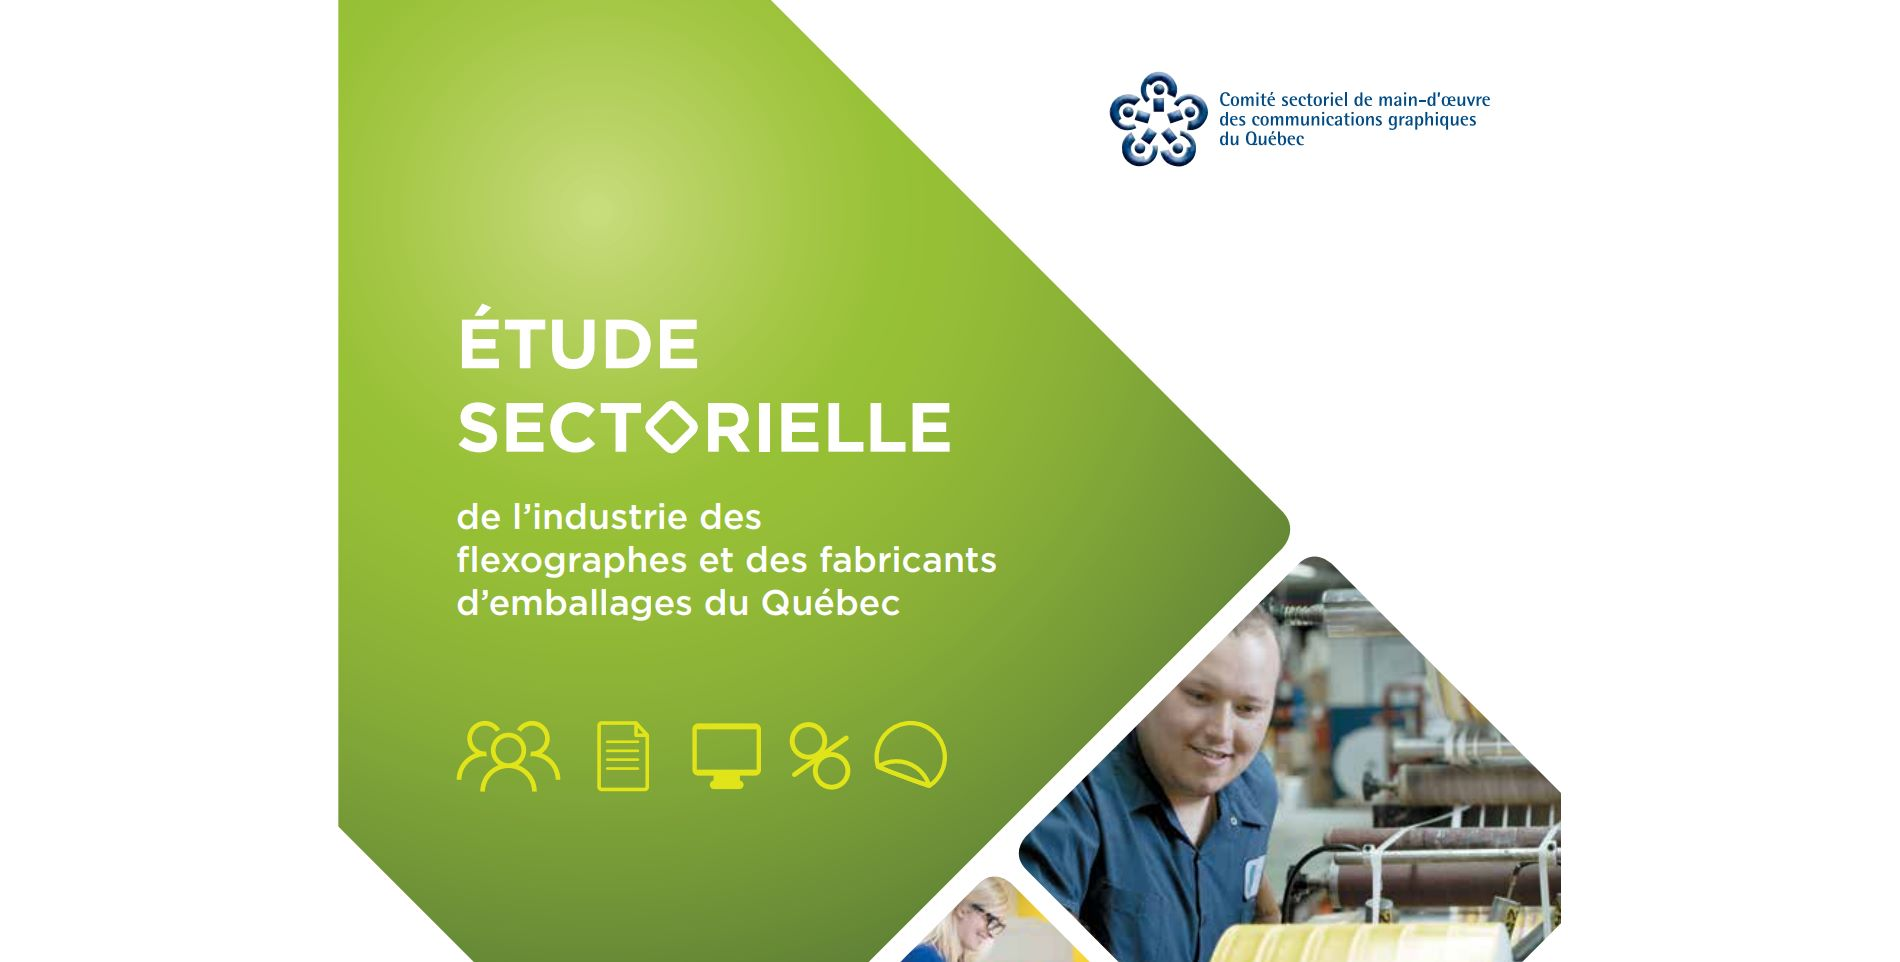 CSMOCGQ | Sectorial study on the industry of flexographers and